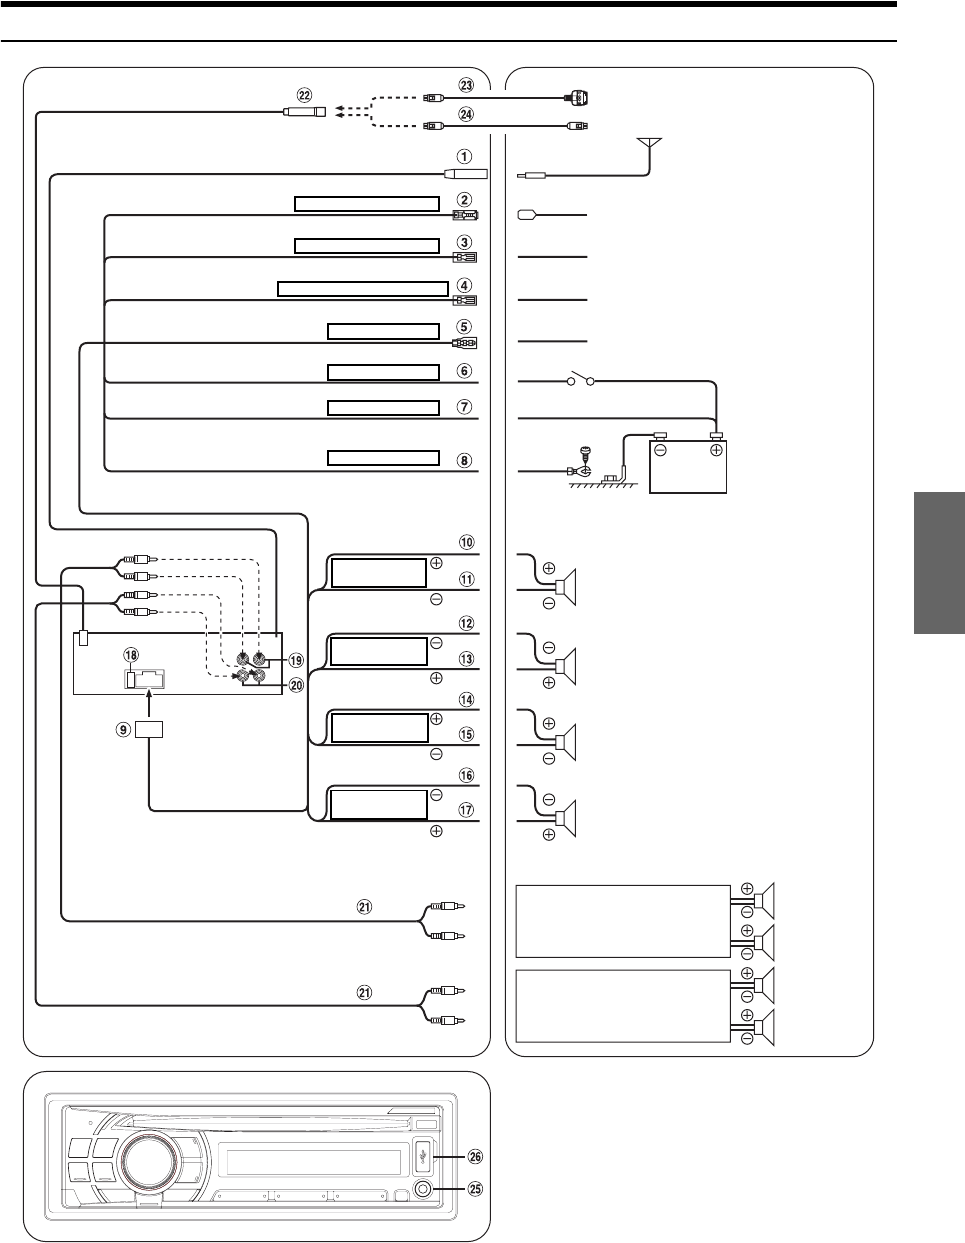 b11c451b 3cc1 41a1 925b 745f07e29109 bg1d?resize\\\\\\\=665%2C857 kenwood kdc 352u wiring diagram wiring diagrams on wiring diagram kenwood kdc x494 wiring diagram at eliteediting.co